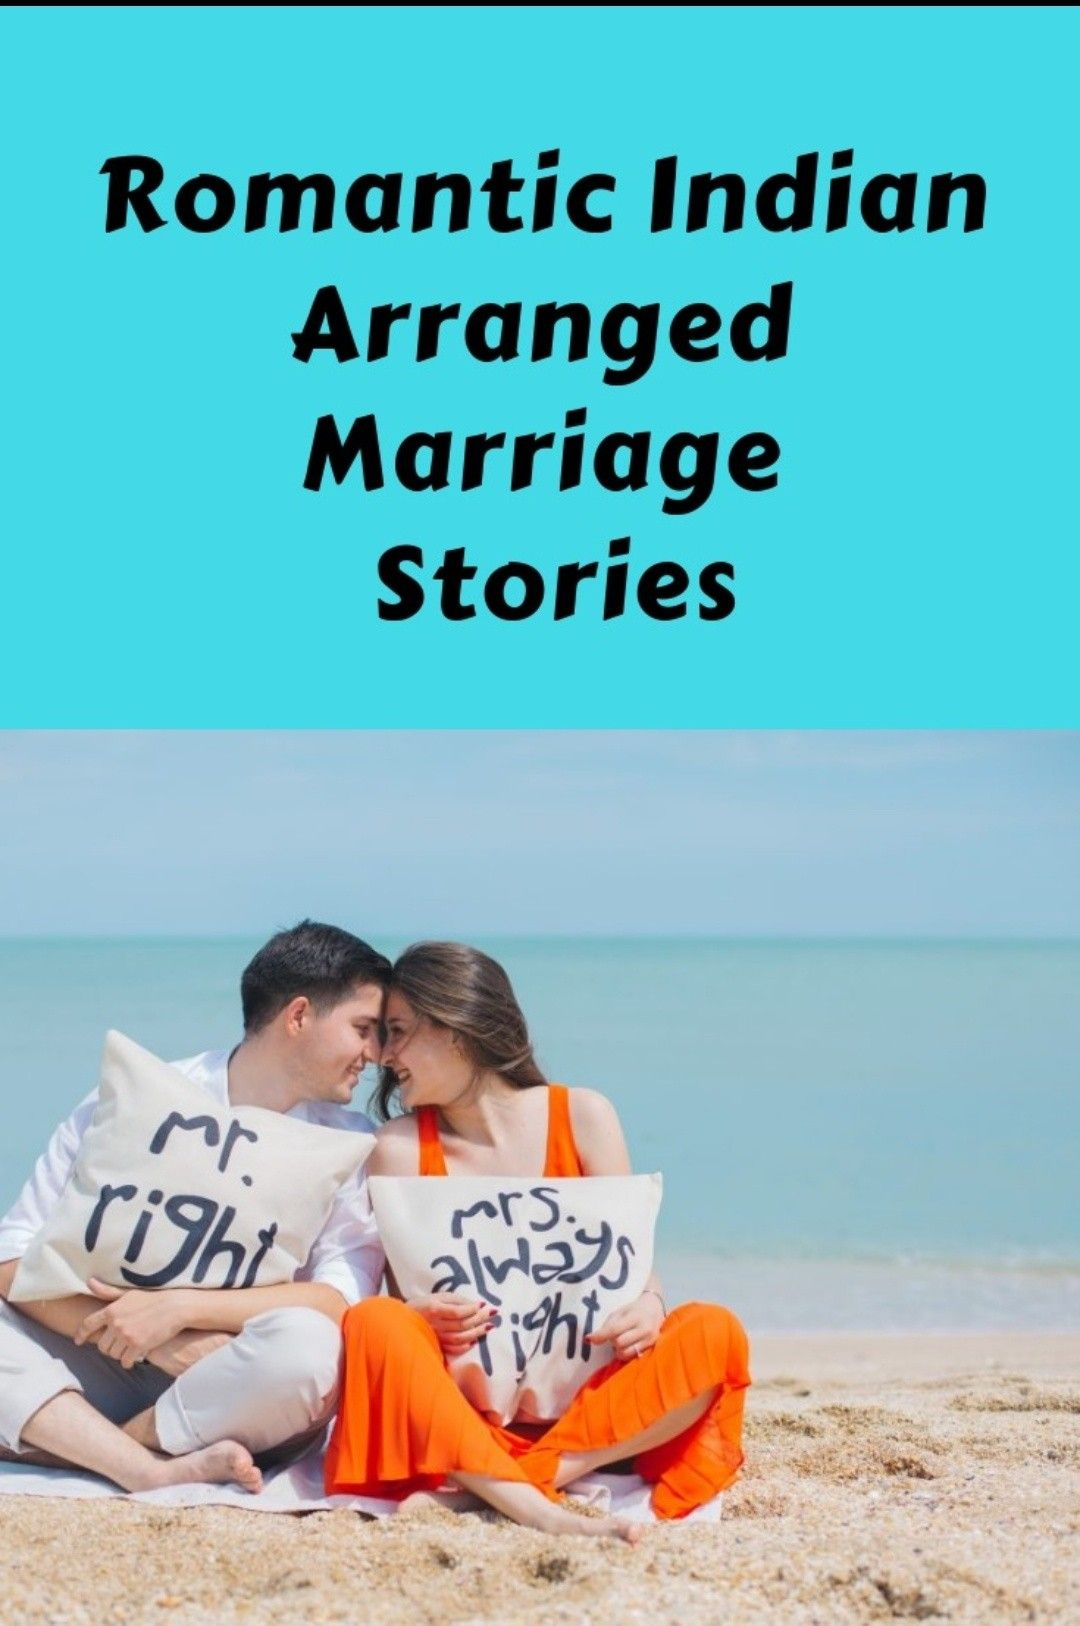 Checkout so Interesting yet Cute Romantic Indian arranged marriage